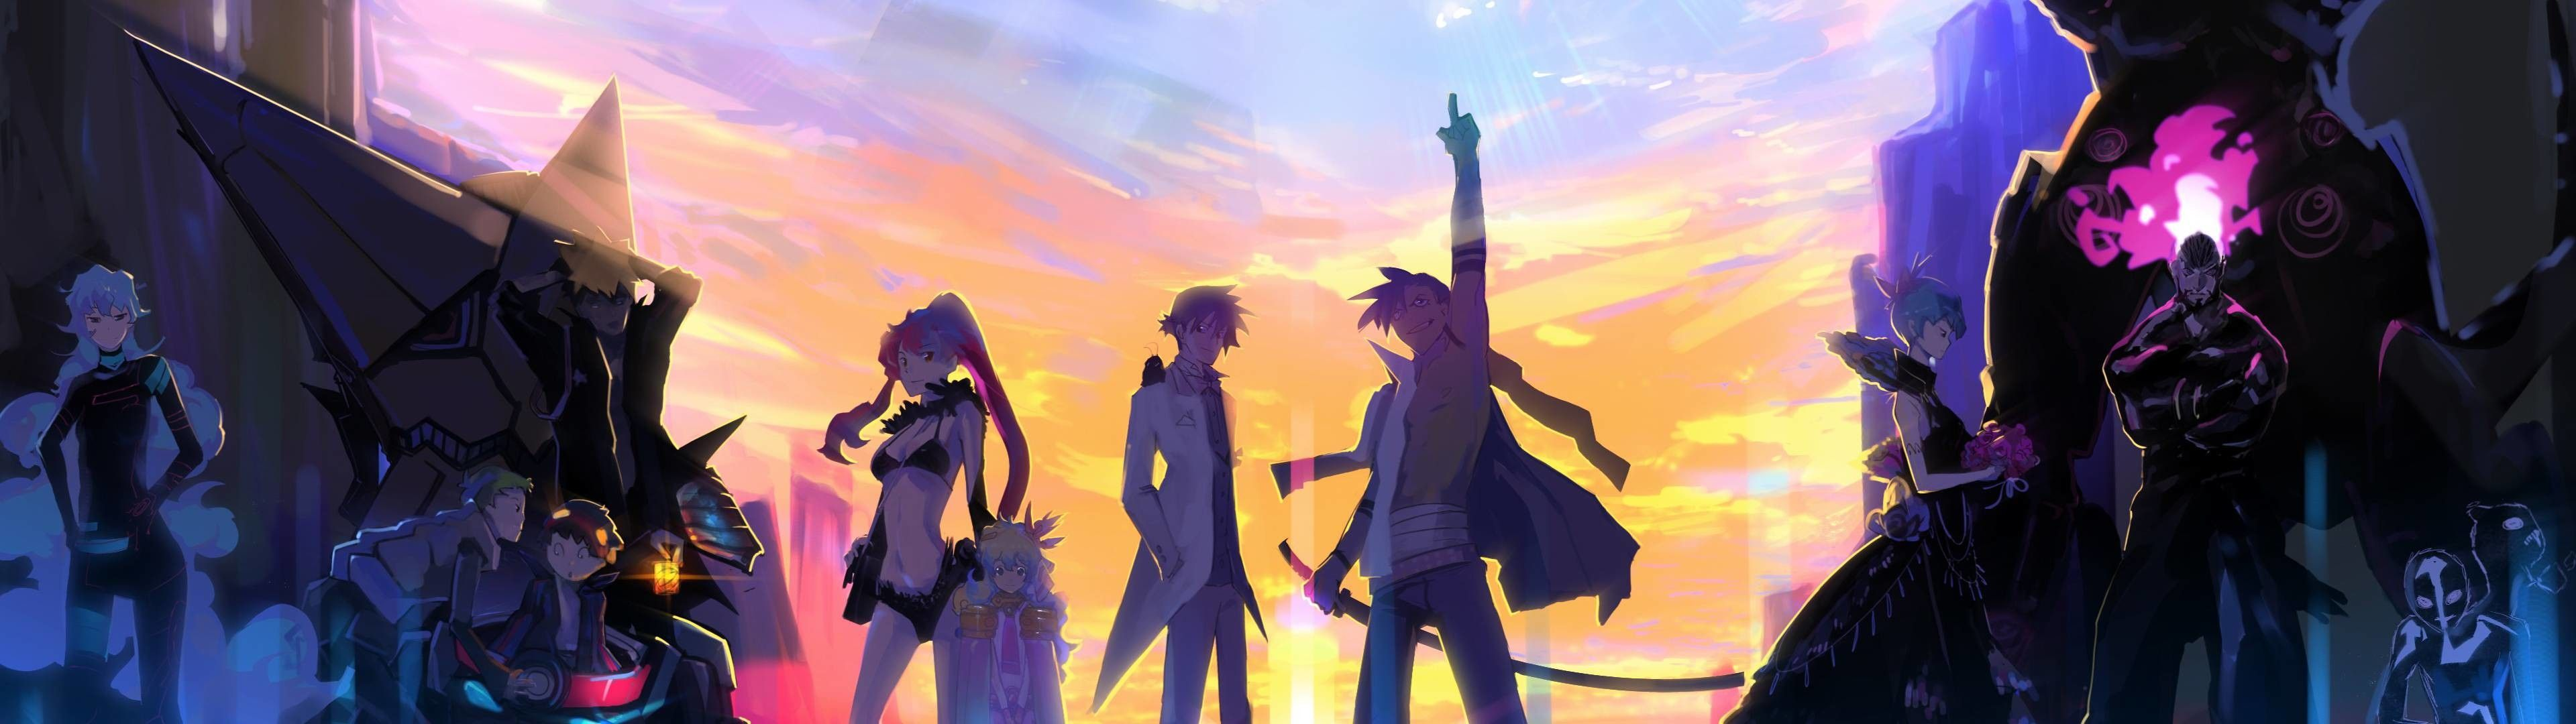 Dual Monitor Anime Wallpapers Top Free Dual Monitor Anime Backgrounds Wallpaperaccess